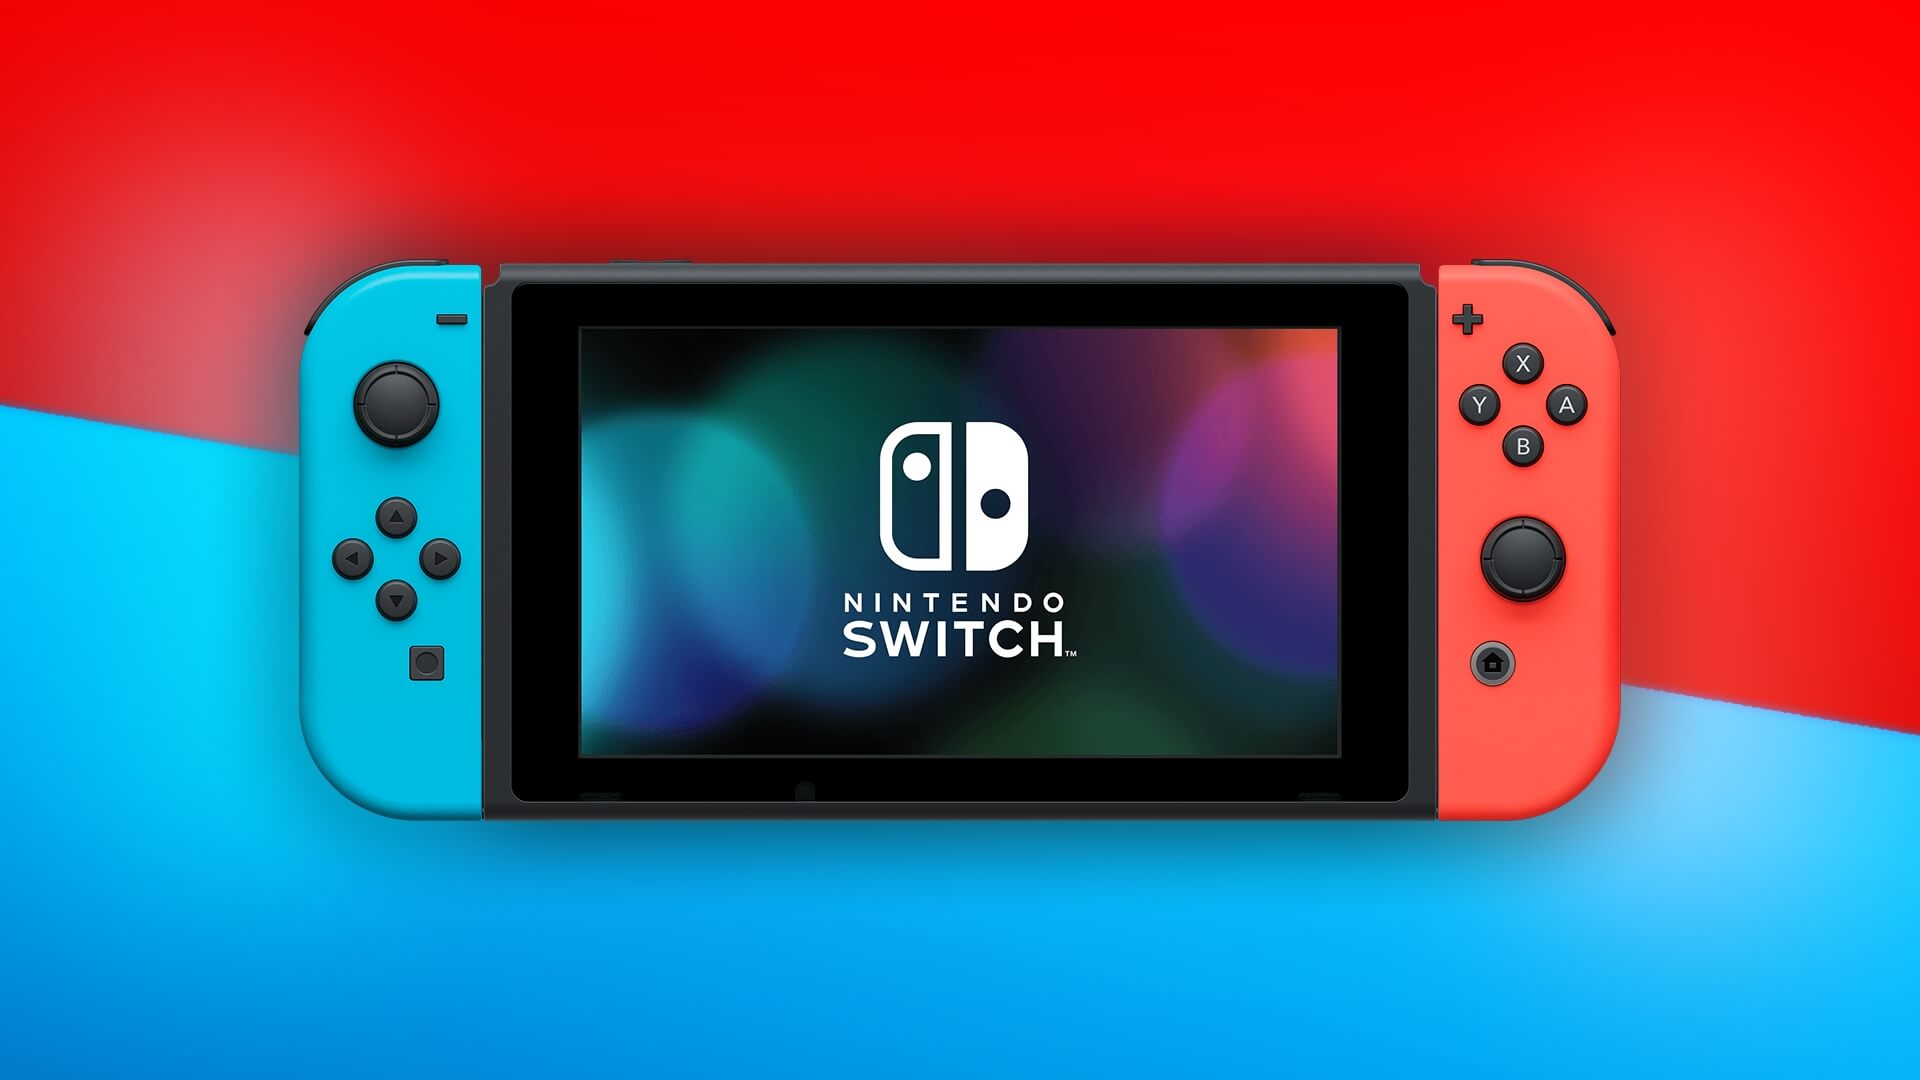 New Version of Nintendo Switch is Very Likely For 2019